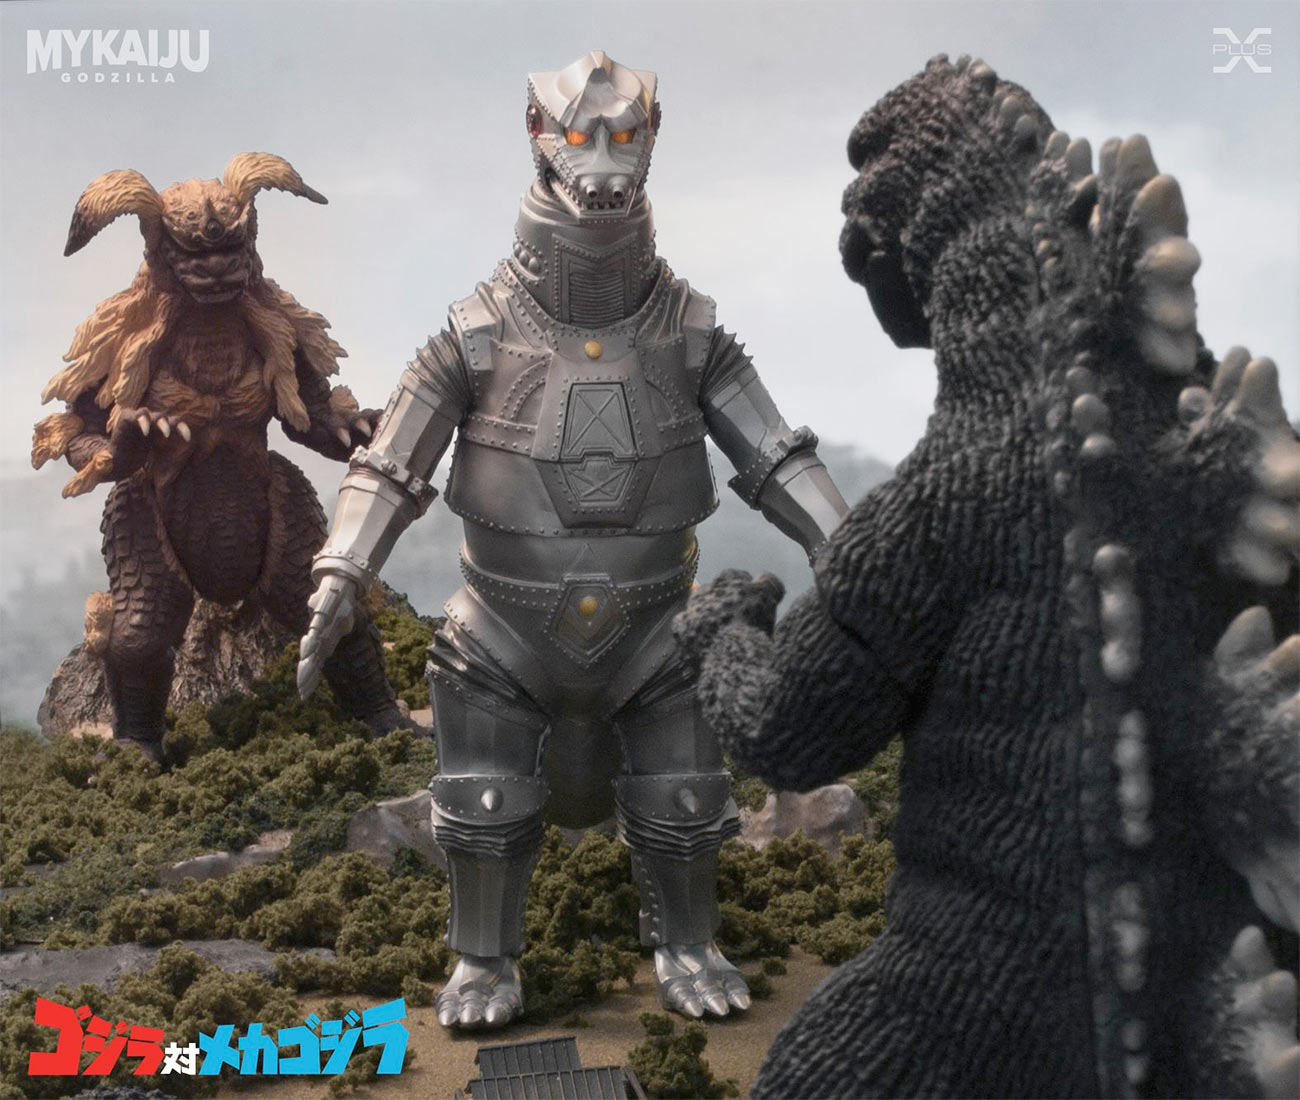 A scene from Godzilla vs. Mechagodzilla re-enacted with X-Plus figures, by John Ruffin.